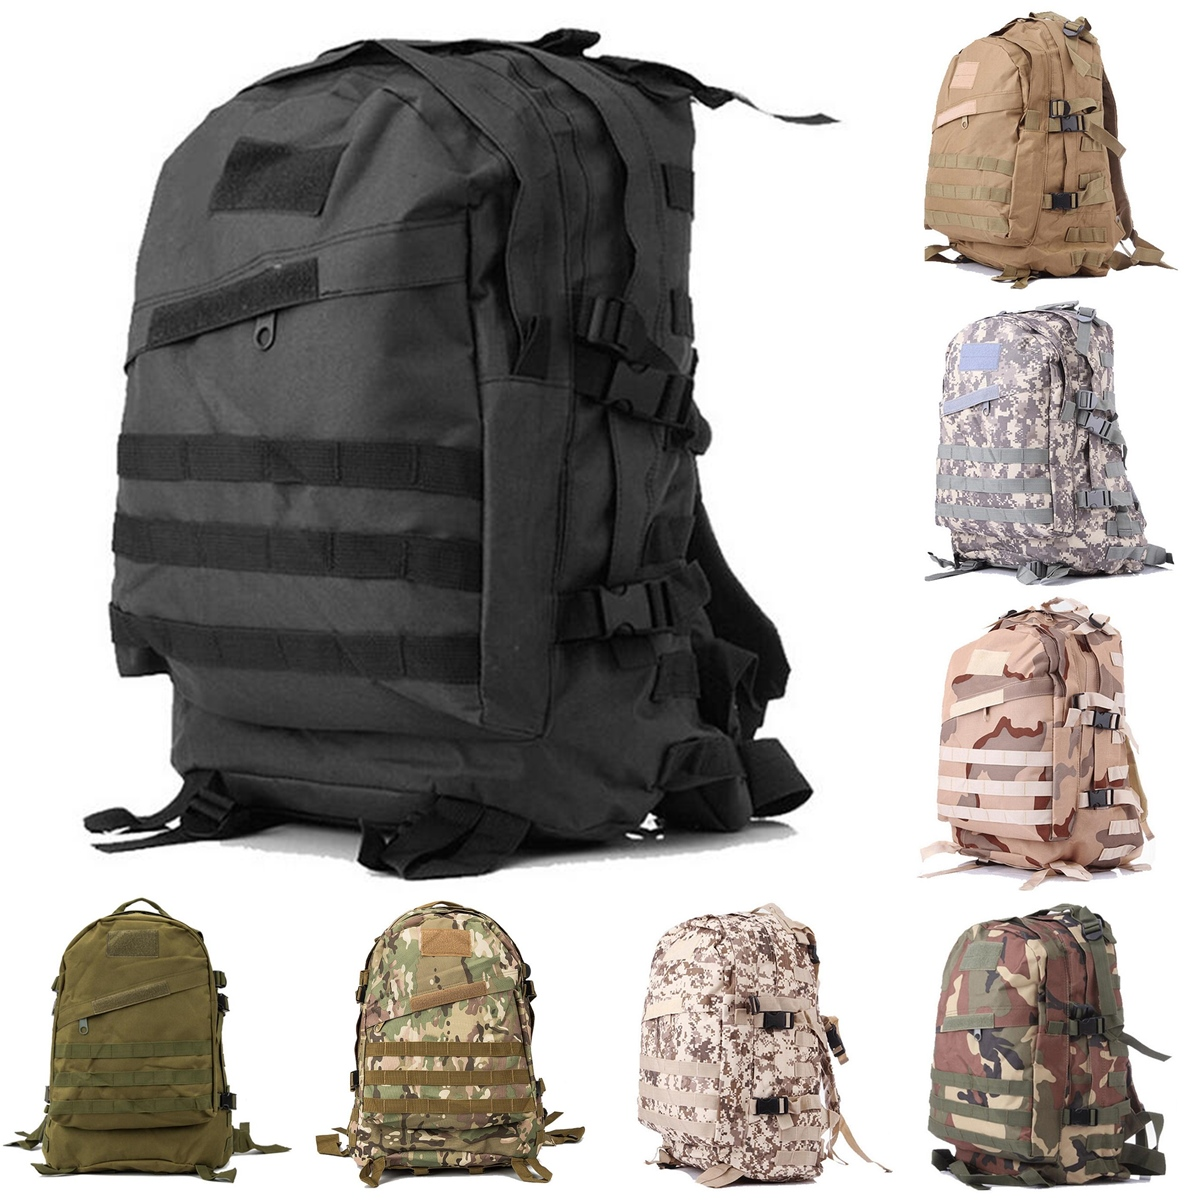 55L Outdoor Tactical Army Backpack Rucksack Waterproof Camping Hiking Shoulder Bag